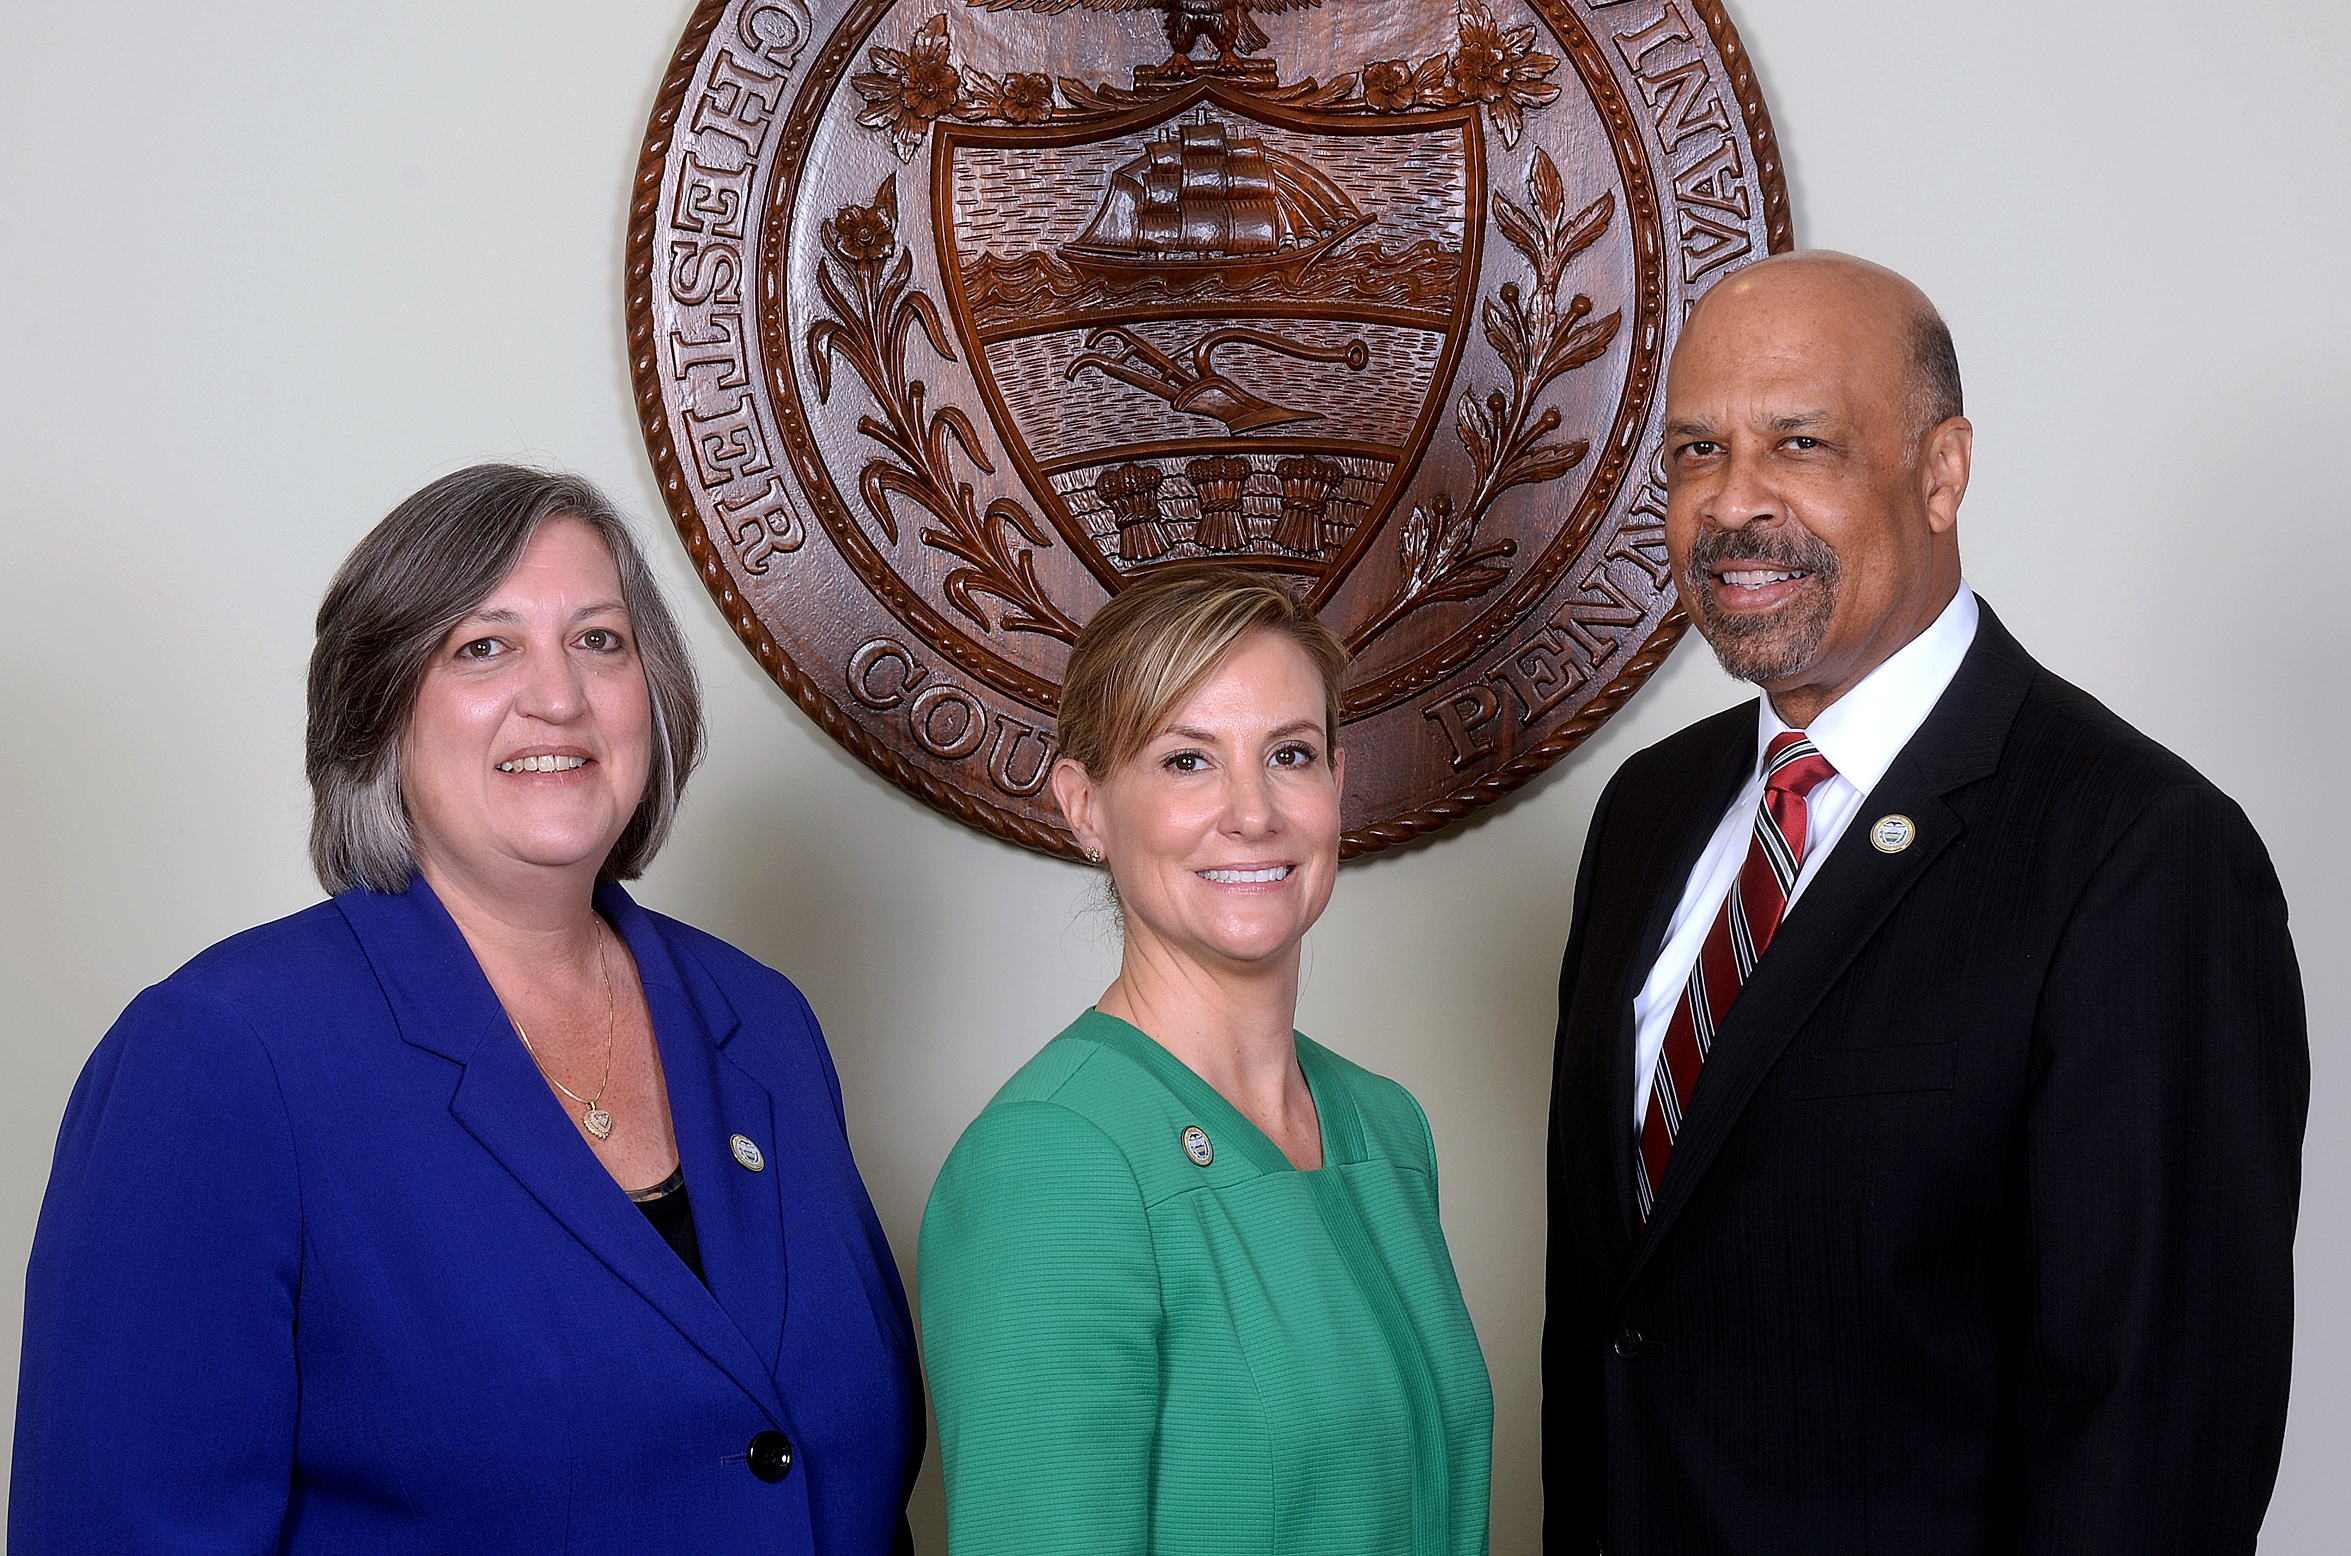 Chester County Commissioners Examine 'State of the County'